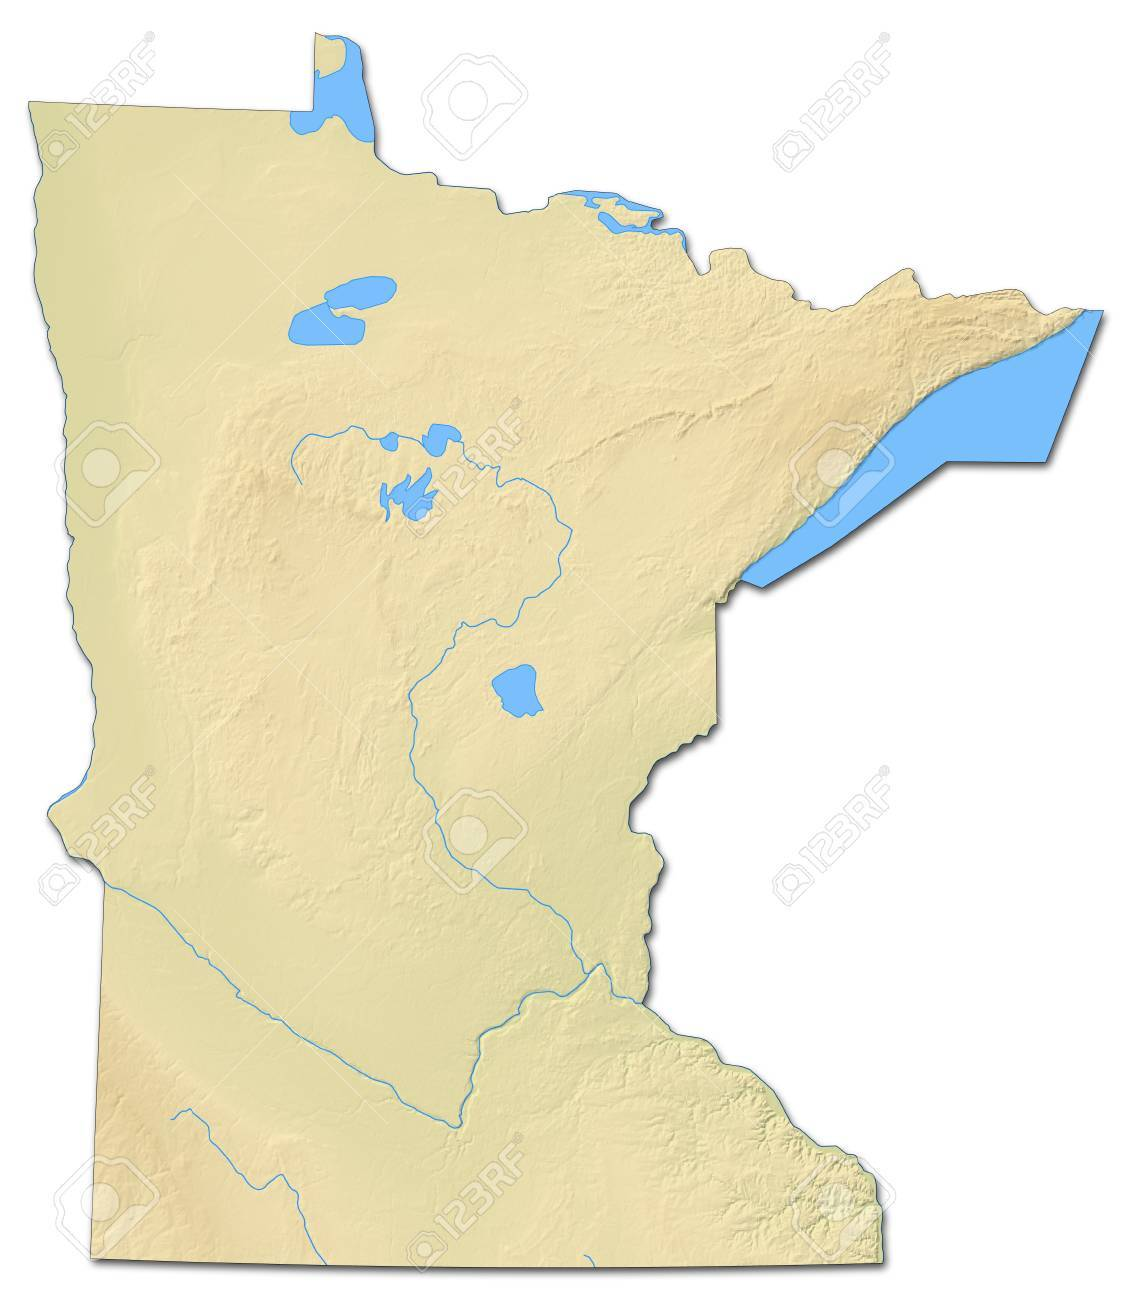 Relief Map Of Minnesota A Province Of United States With Shaded